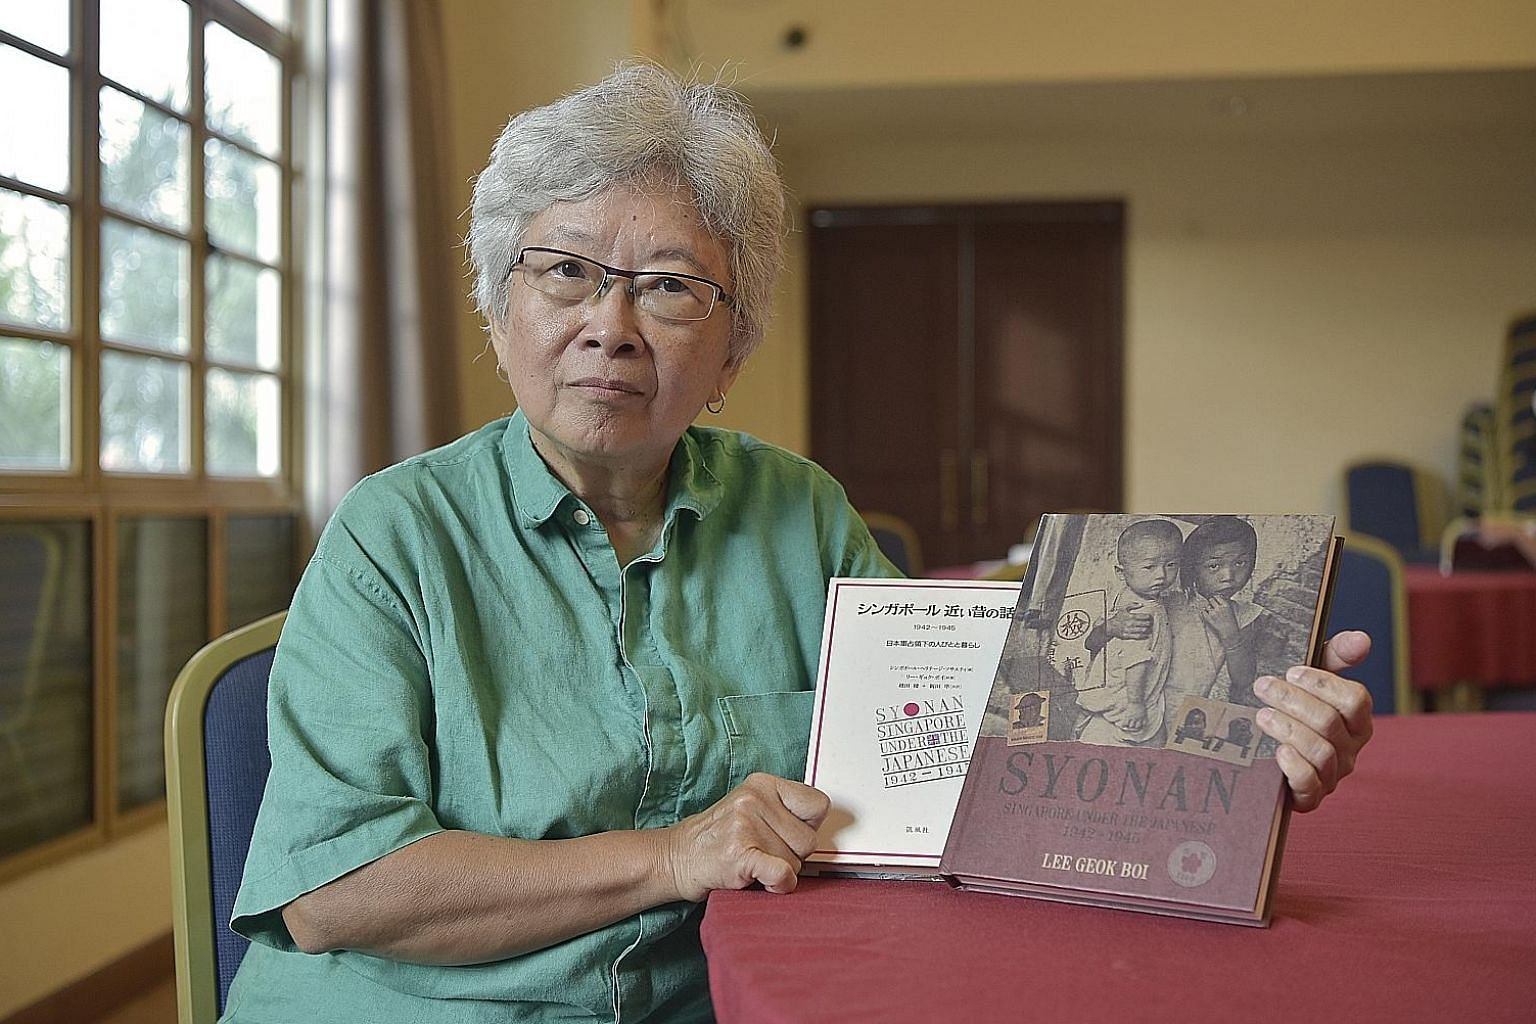 A chronicler of the Japanese Occupation, Lee Geok Boi (above) has launched the second edition of her 1992 book, Syonan, to commemorate the 75th anniversary of the fall of Singapore.